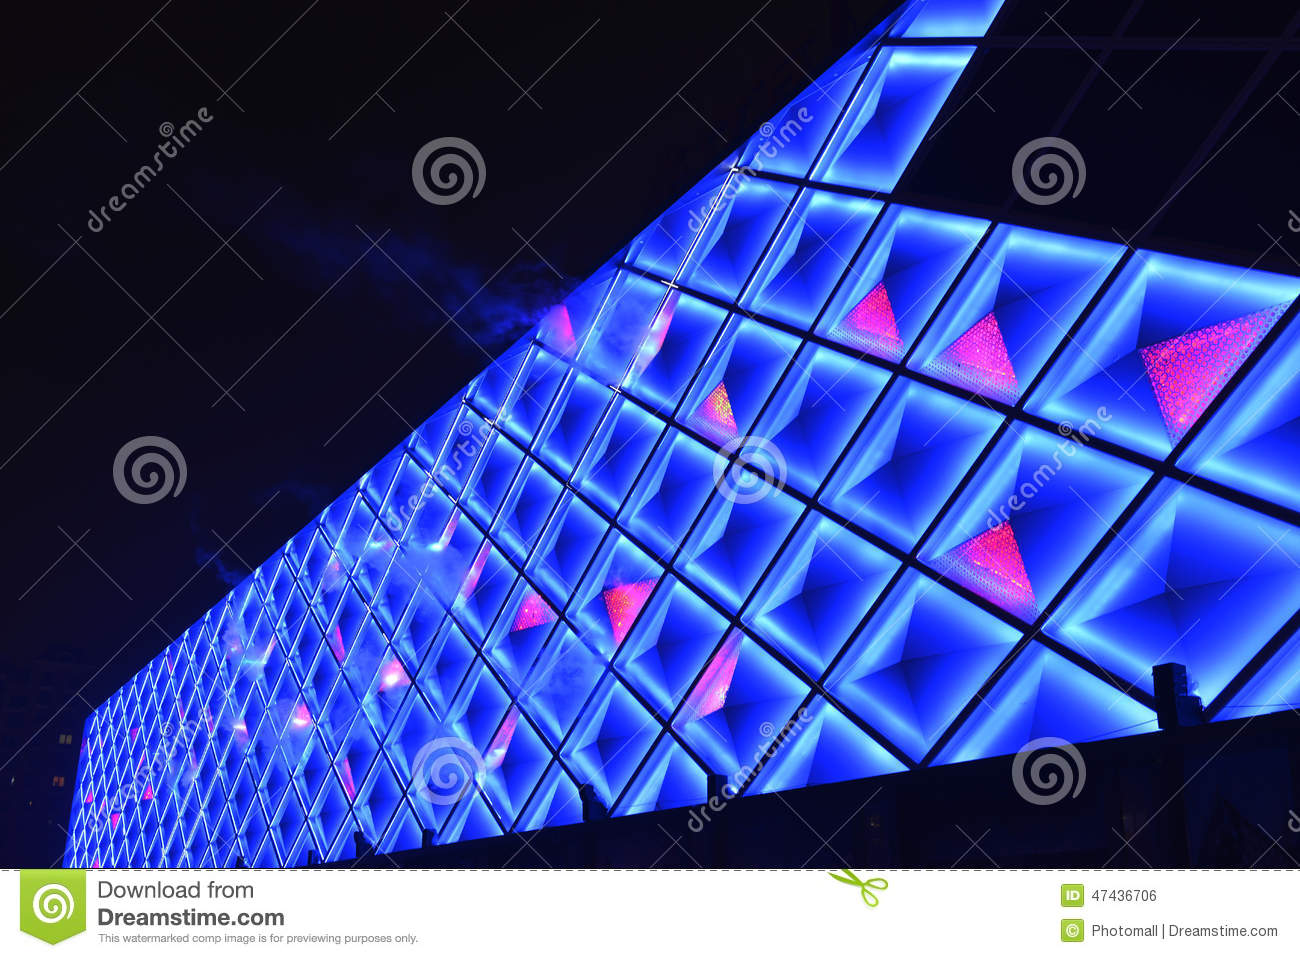 Download Led Curtain Wallnight Lighting Of Modern Commercial Building Stock Photo